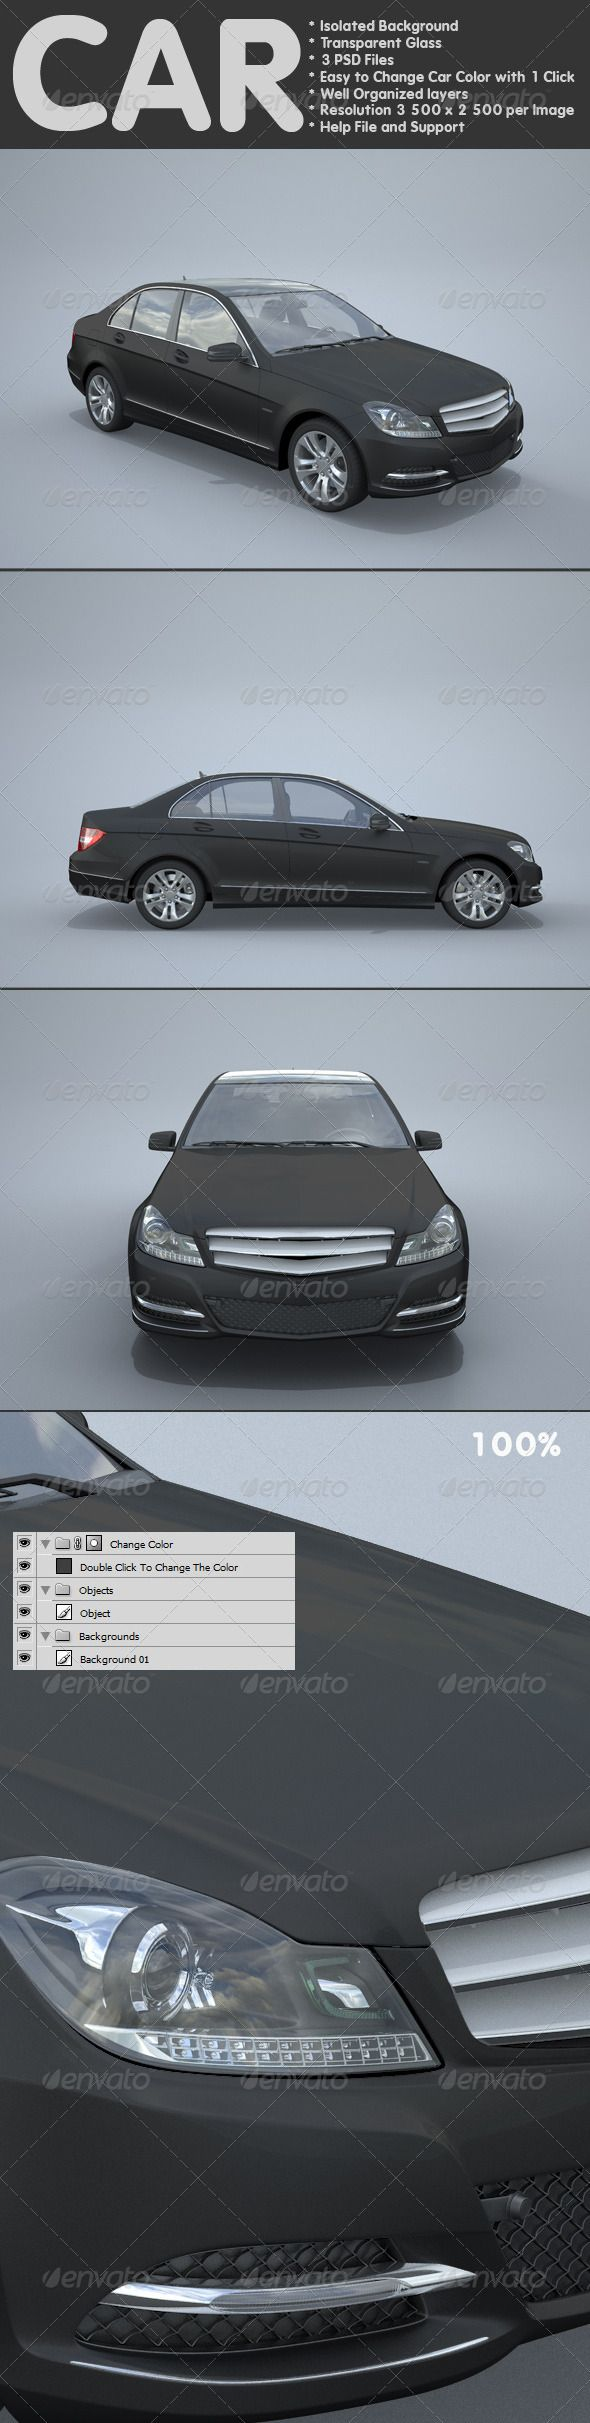 Car  #GraphicRiver         Car  	 	 Isolated Background  		 Transparent Glass 		 3 psd files 		 easy to change car color with 1 click 		 well organized layers 		 resolution 3500×2500 per image 		 help file and support 	  	                             Created: 13October12 GraphicsFilesIncluded: PhotoshopPSD #JPGImage HighResolution: No Layered: Yes MinimumAdobeCSVersion: CS PixelDimensions: 3500x2500 Tags: auto #automobile #car #cars #changecolors #changeablecolors #chrome #gloss #gray…